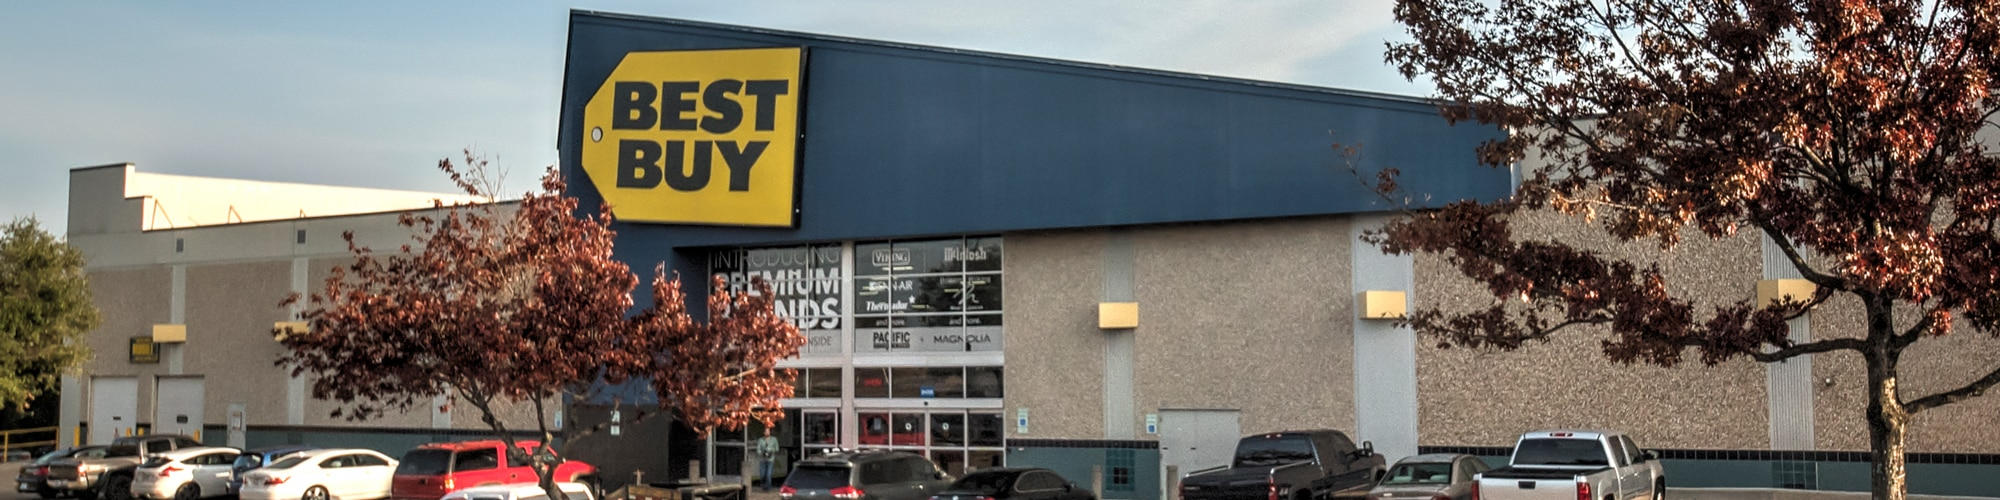 Best Buy at South Towne Square | 4970 US-290 West in Austin, Texas